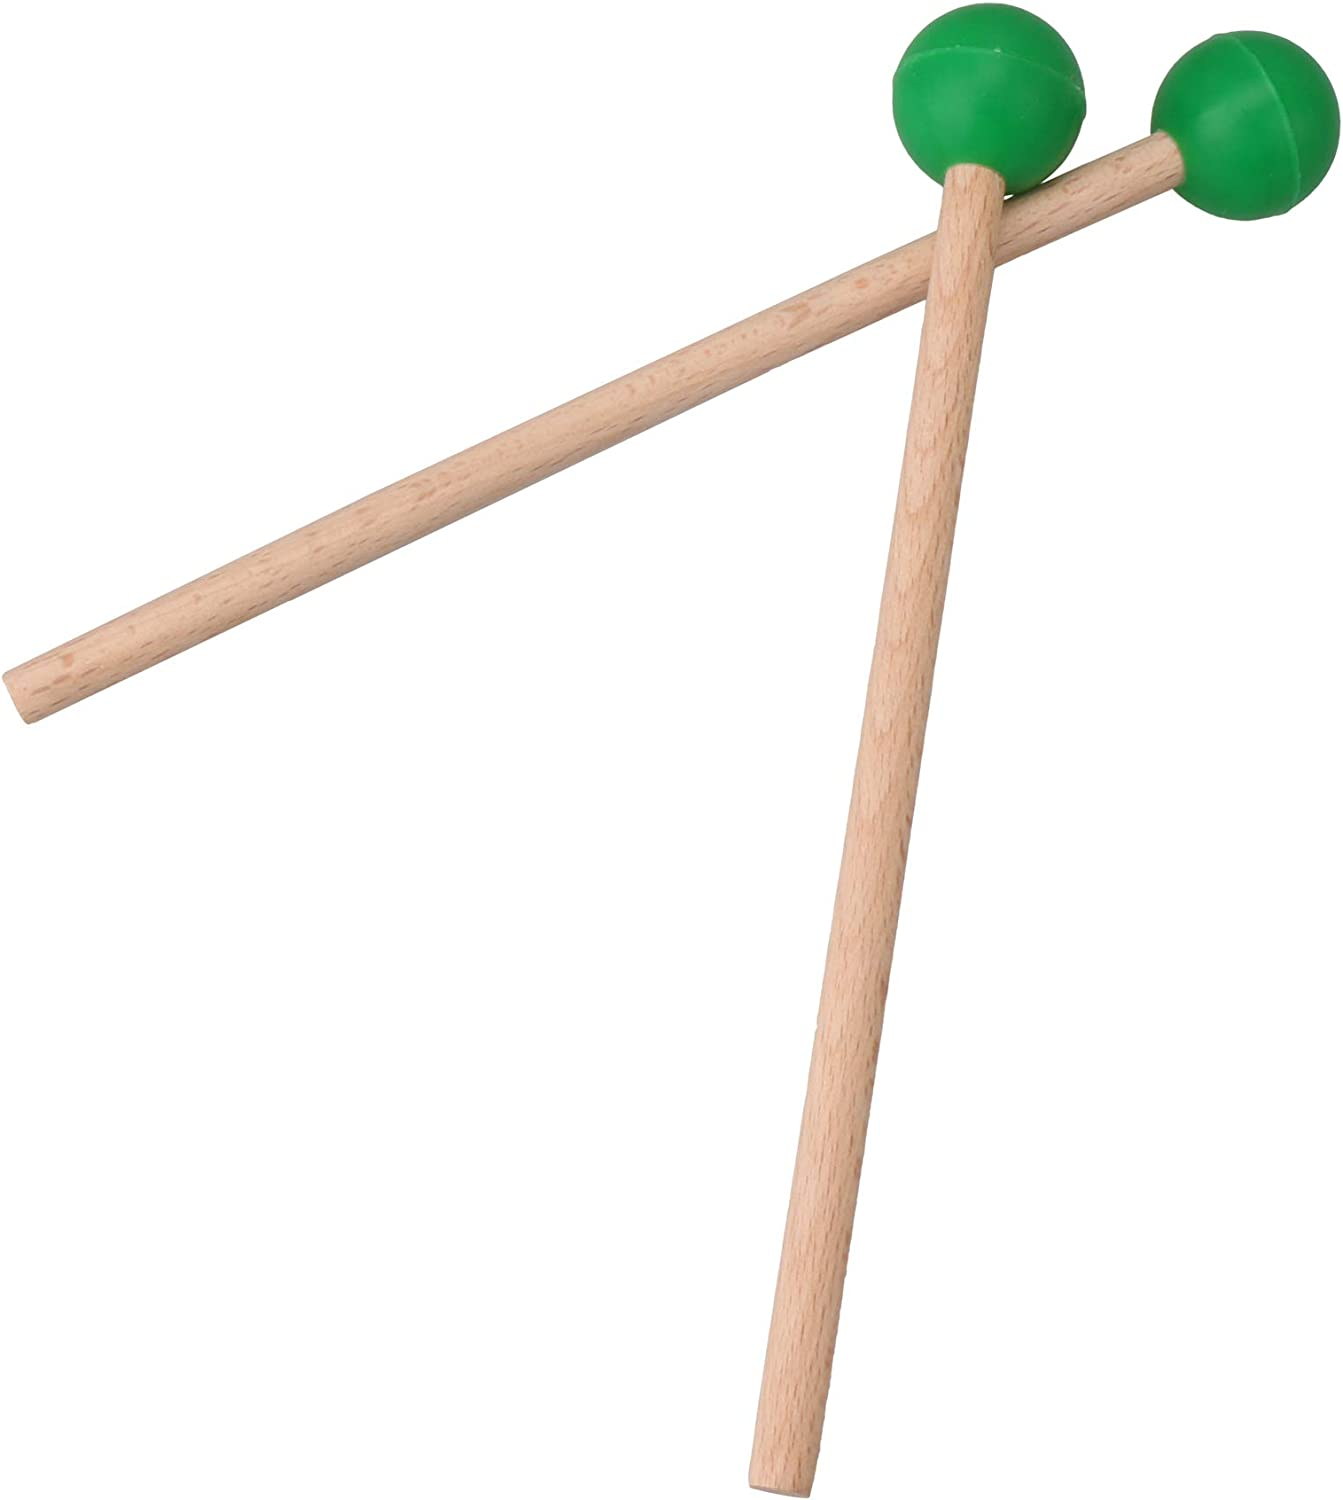 BQLZR Green Rubber Head Drum Mallets Timpani Sticks for Marimba Xylophone Pack of 2